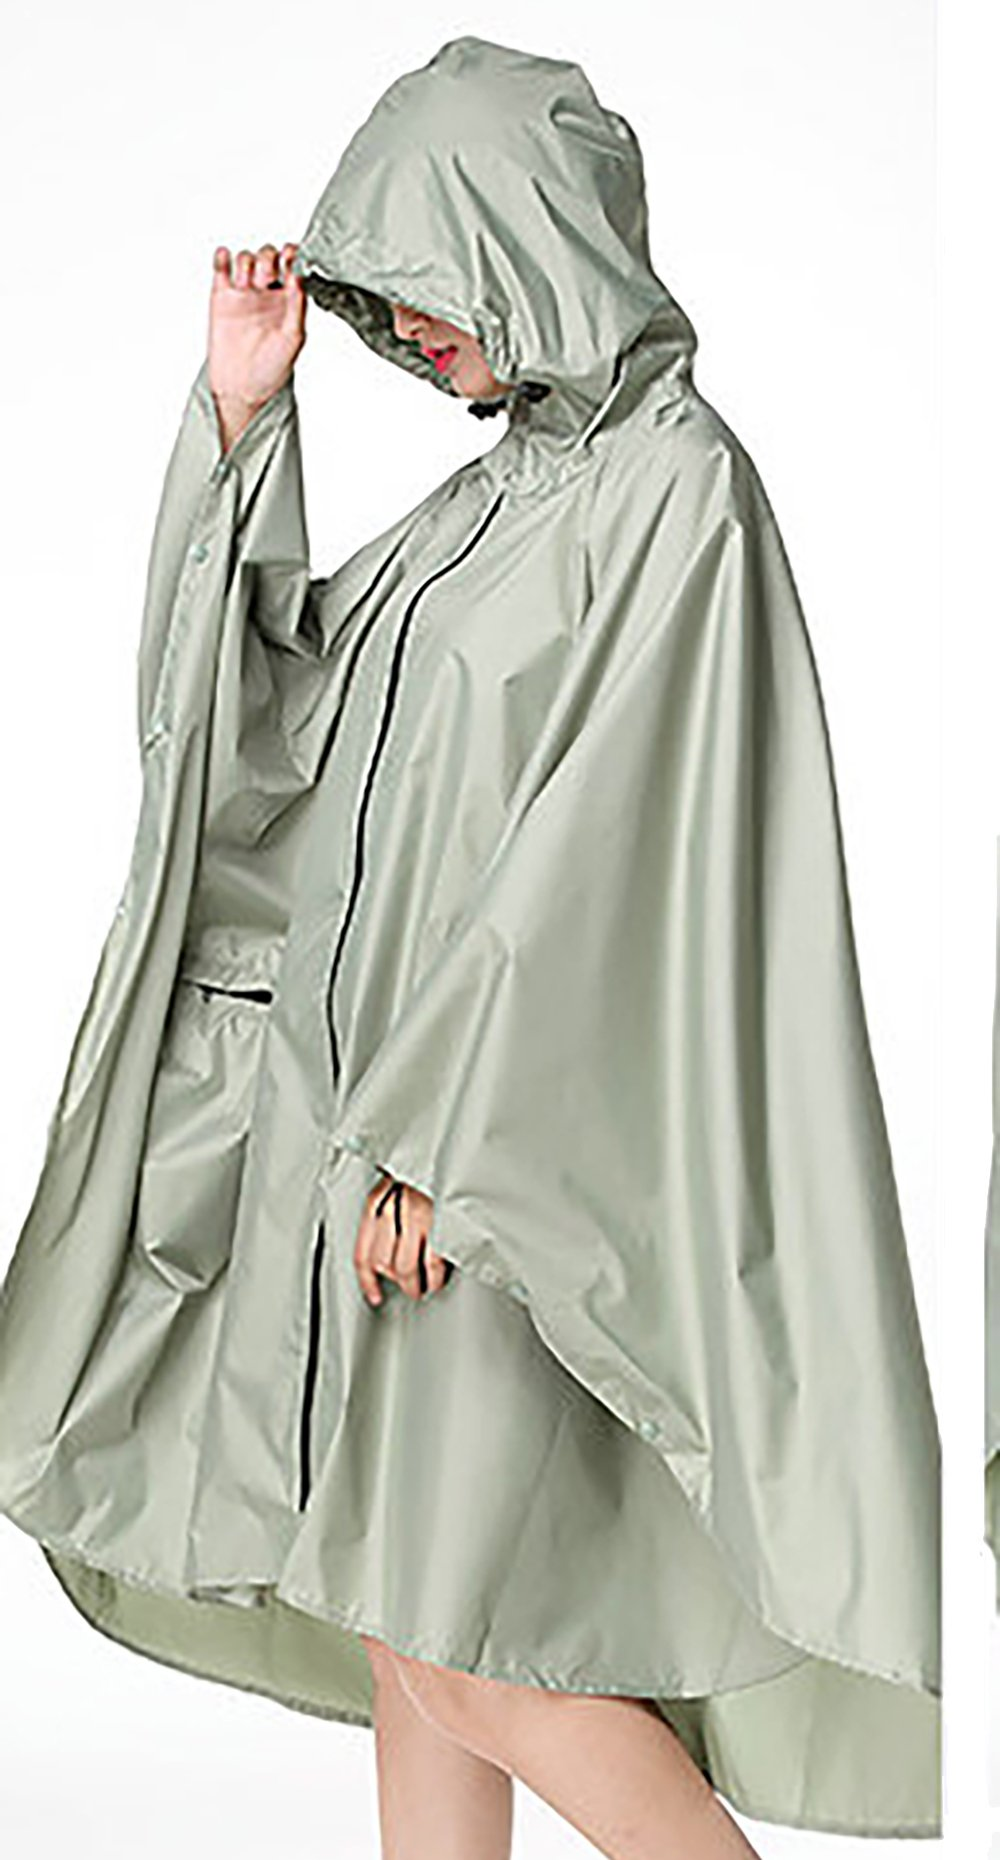 QZUnique Lightweight Outdoor Hooded Waterproof Packable Rain Poncho Jacket Coat Raincoat with Zipper for Adults by QZUnique (Image #4)